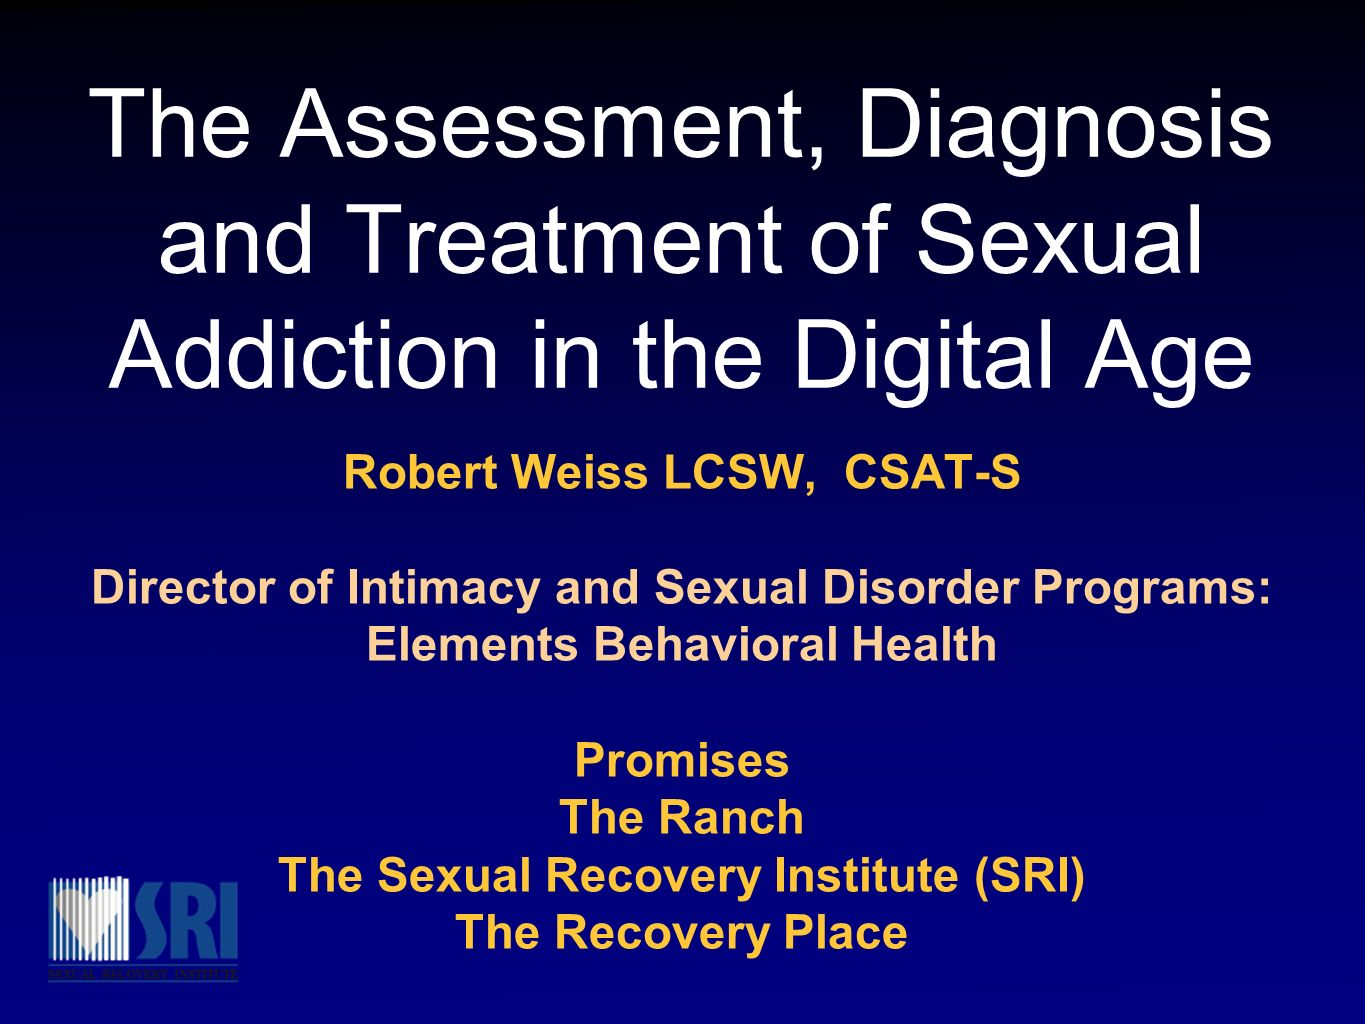 The Assessment, Diagnosis and Treatment of Sexual Addiction in the Digital Age